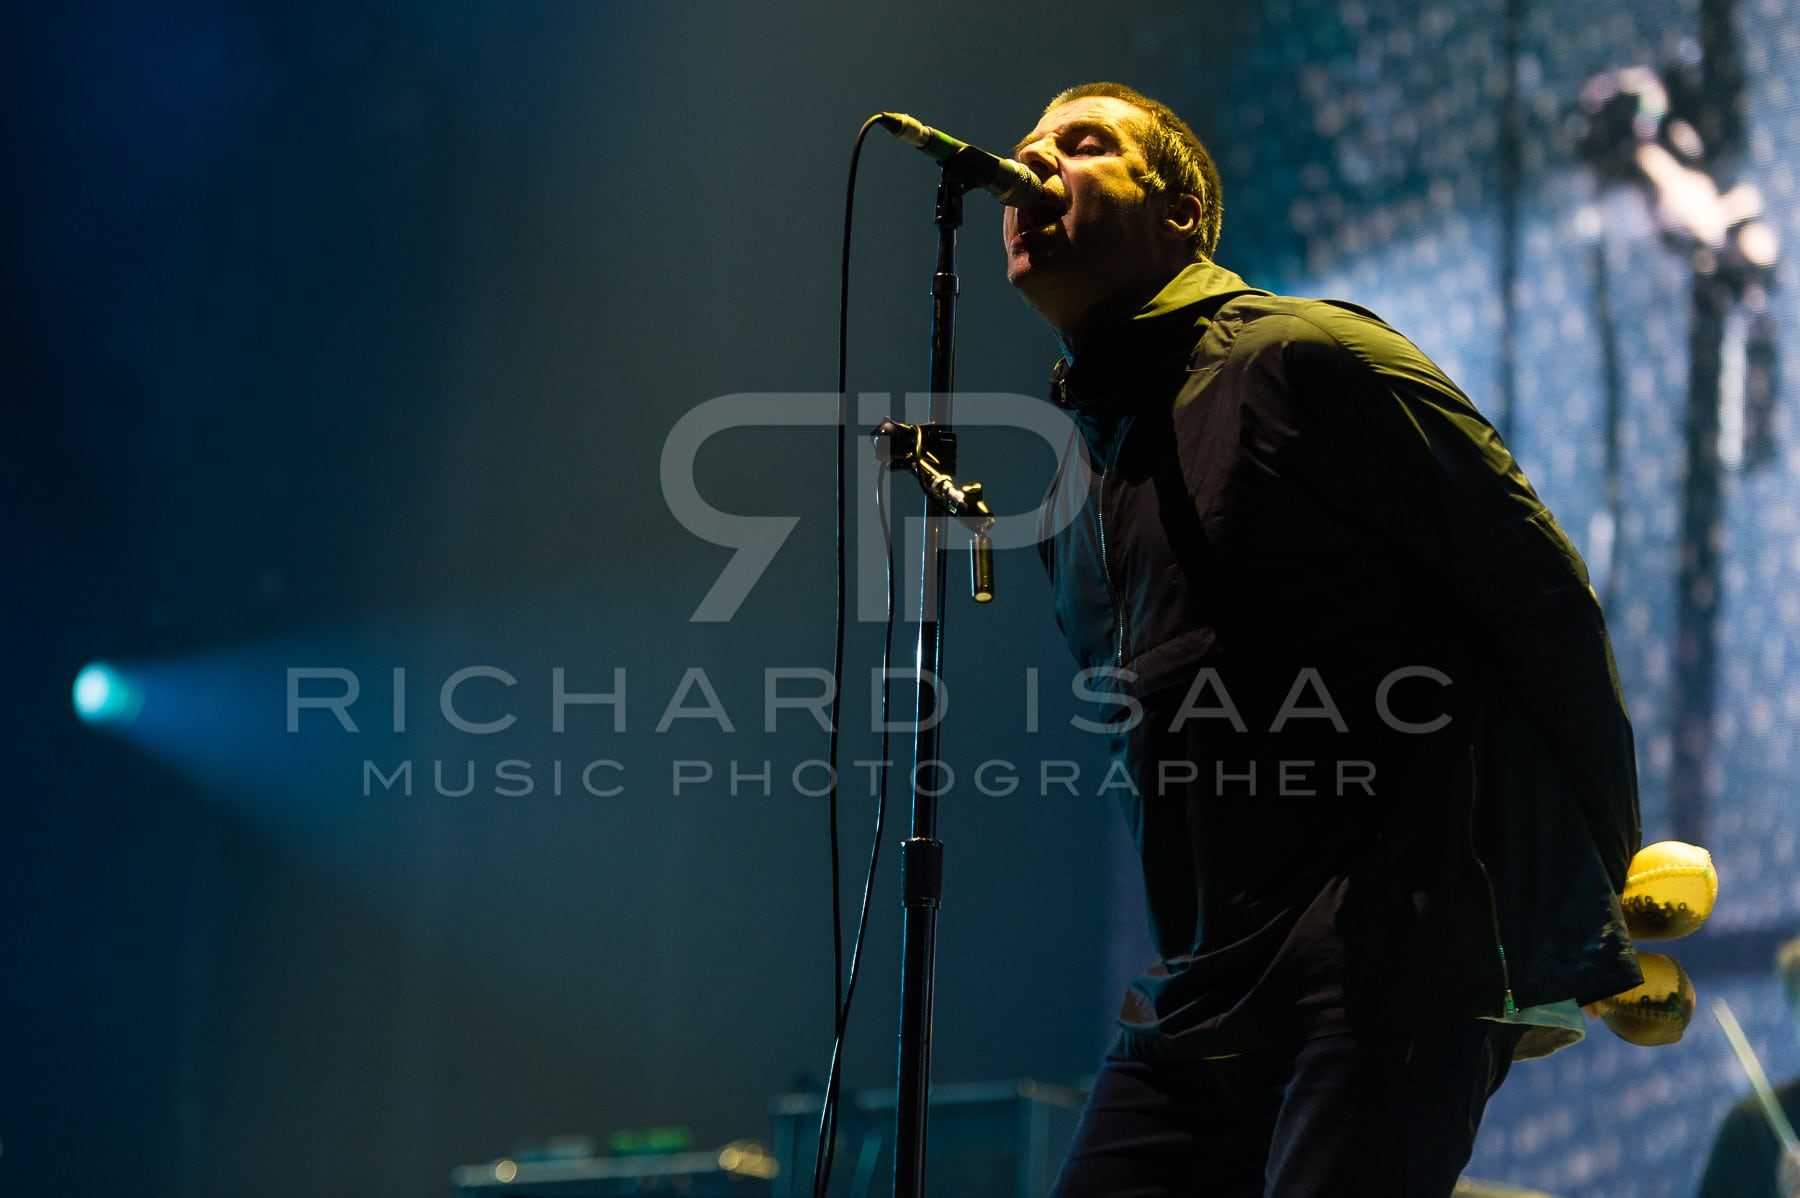 20191128-Liam-Gallagher-o2-032